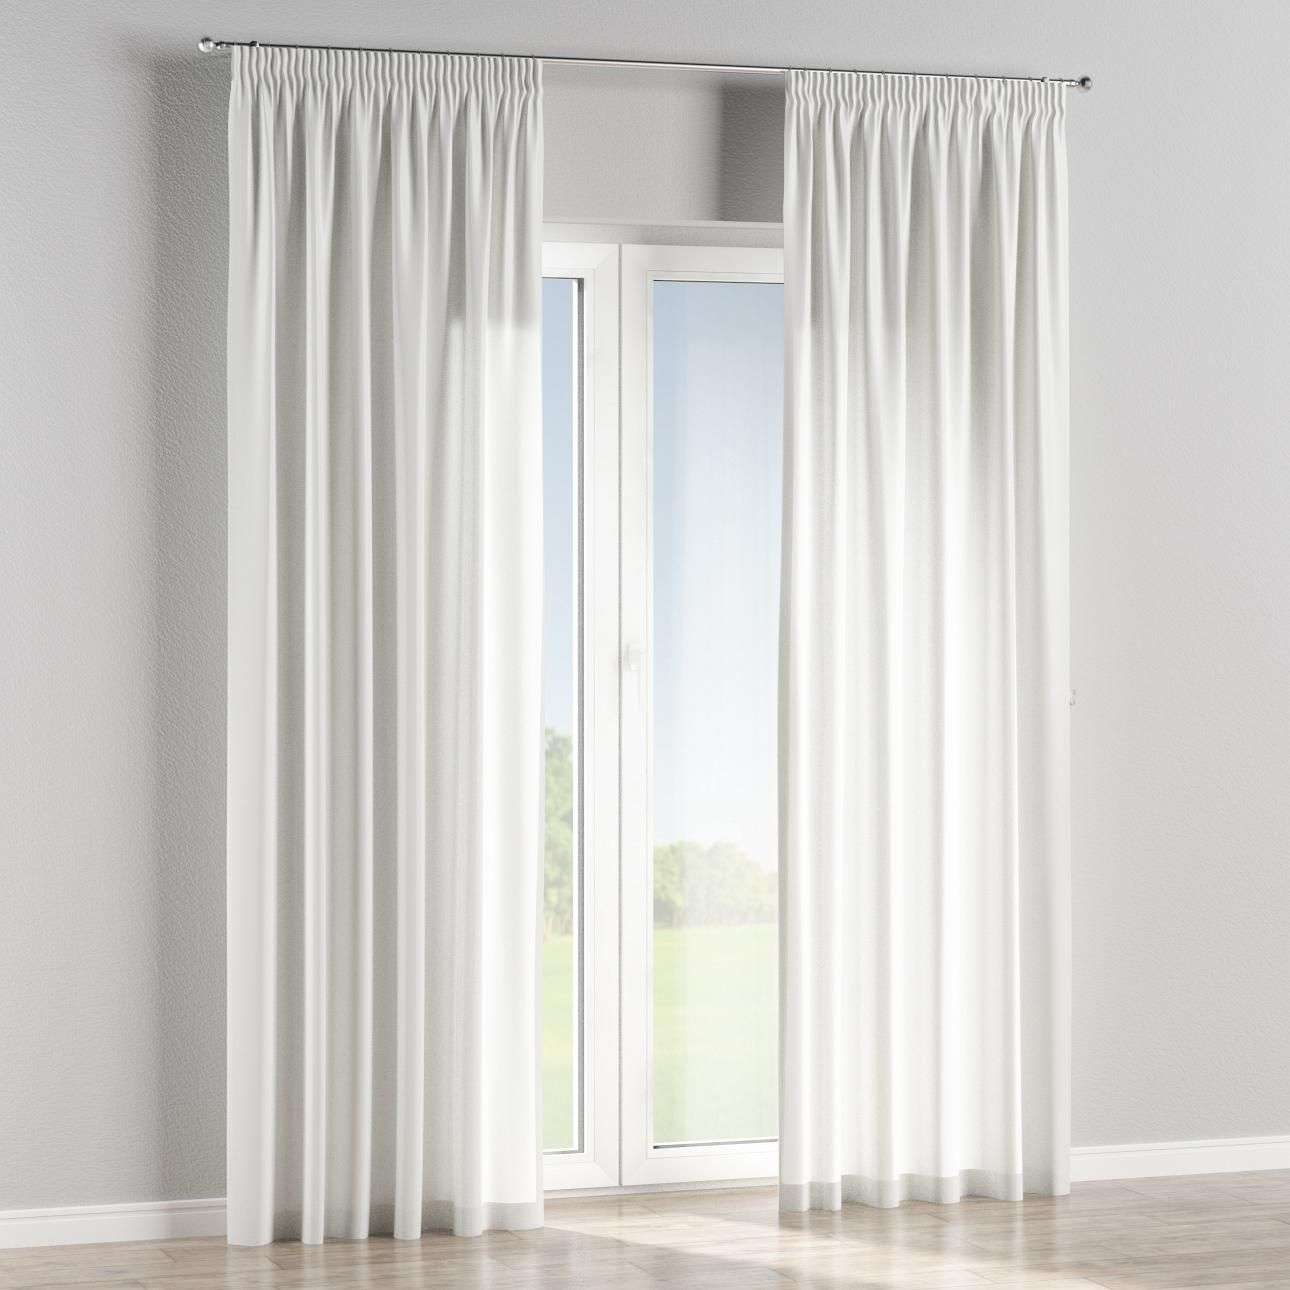 Pencil pleat lined curtains in collection Londres, fabric: 140-43